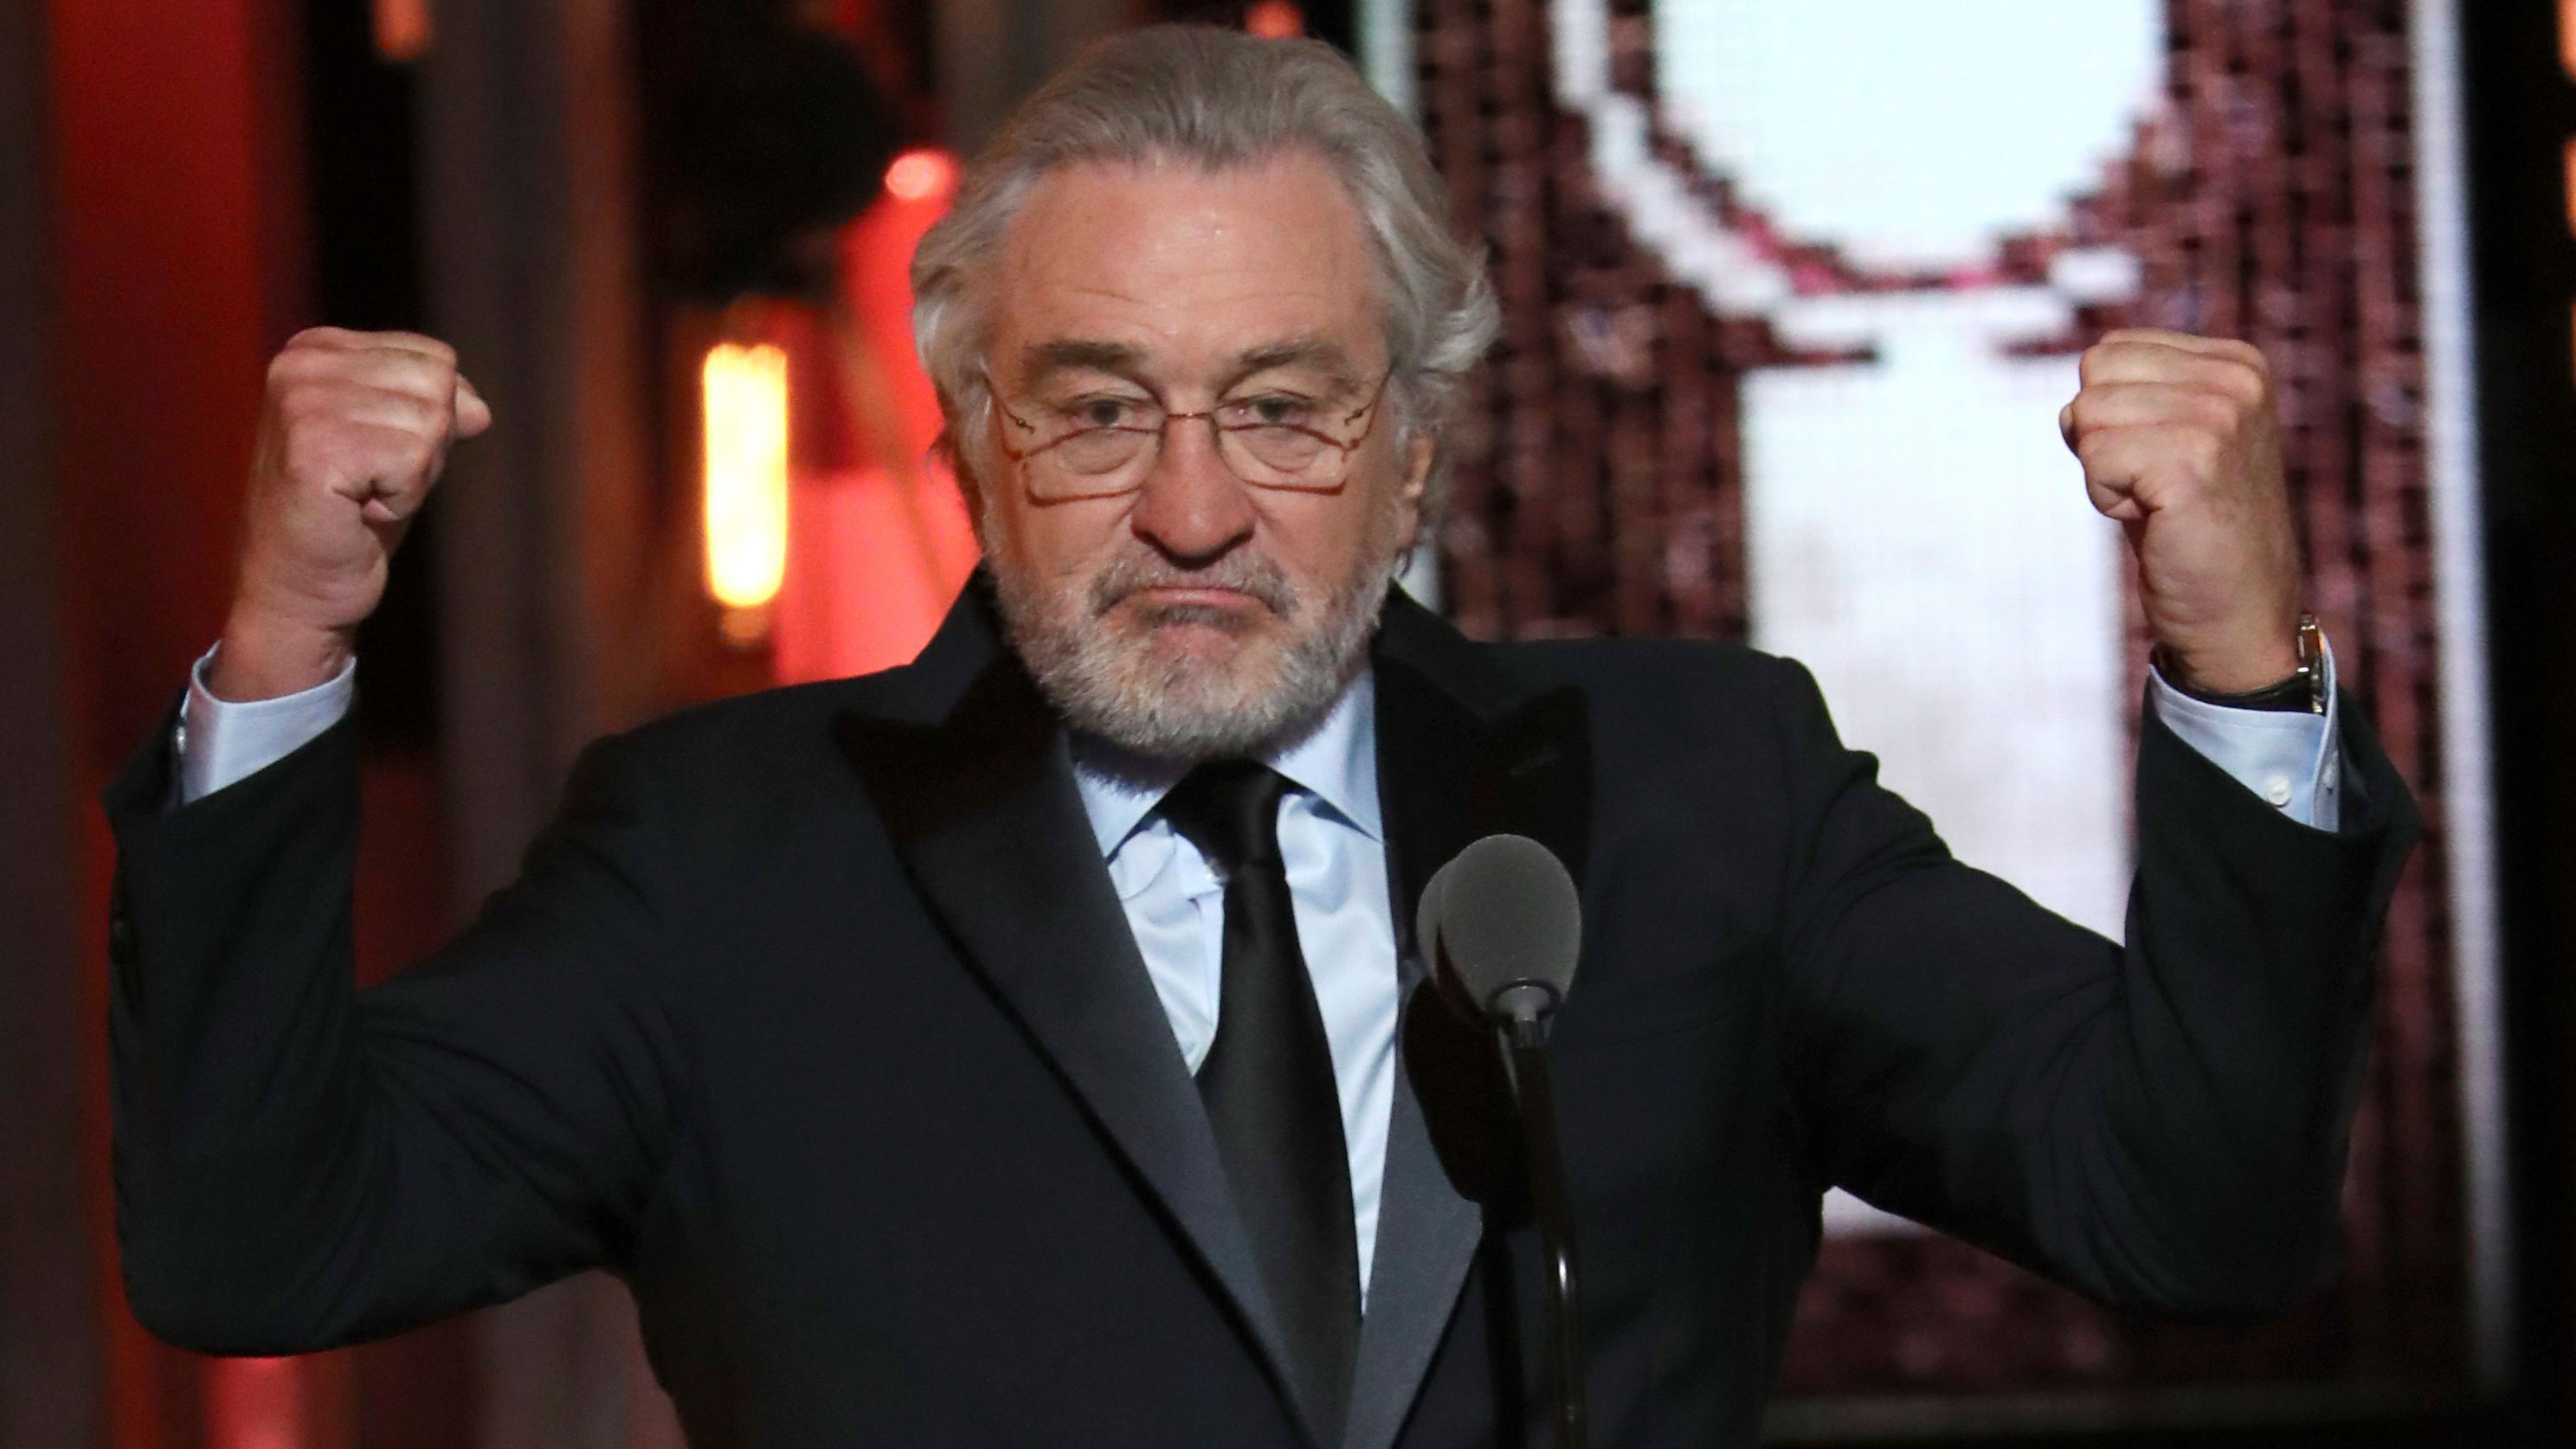 Robert De Niro drops F-bomb against Trump at the Tony Awards